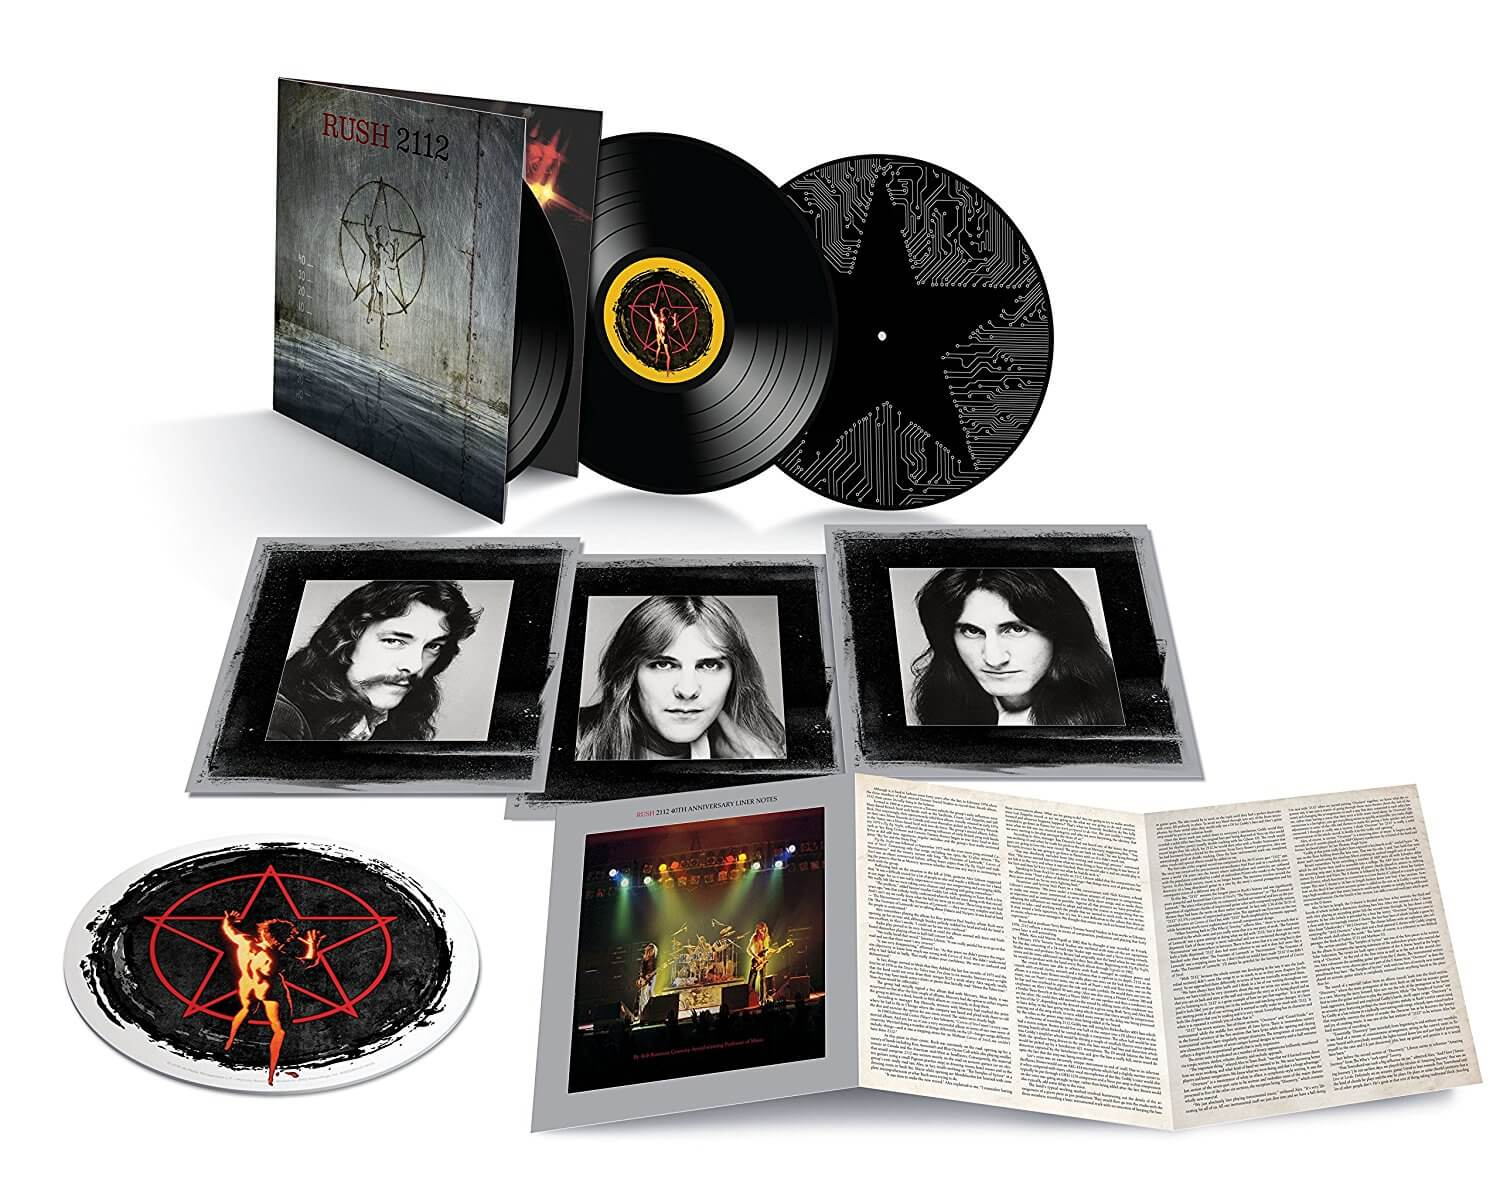 Rush S 2112 Getting 40th Anniversary Reissue Modern Vinyl